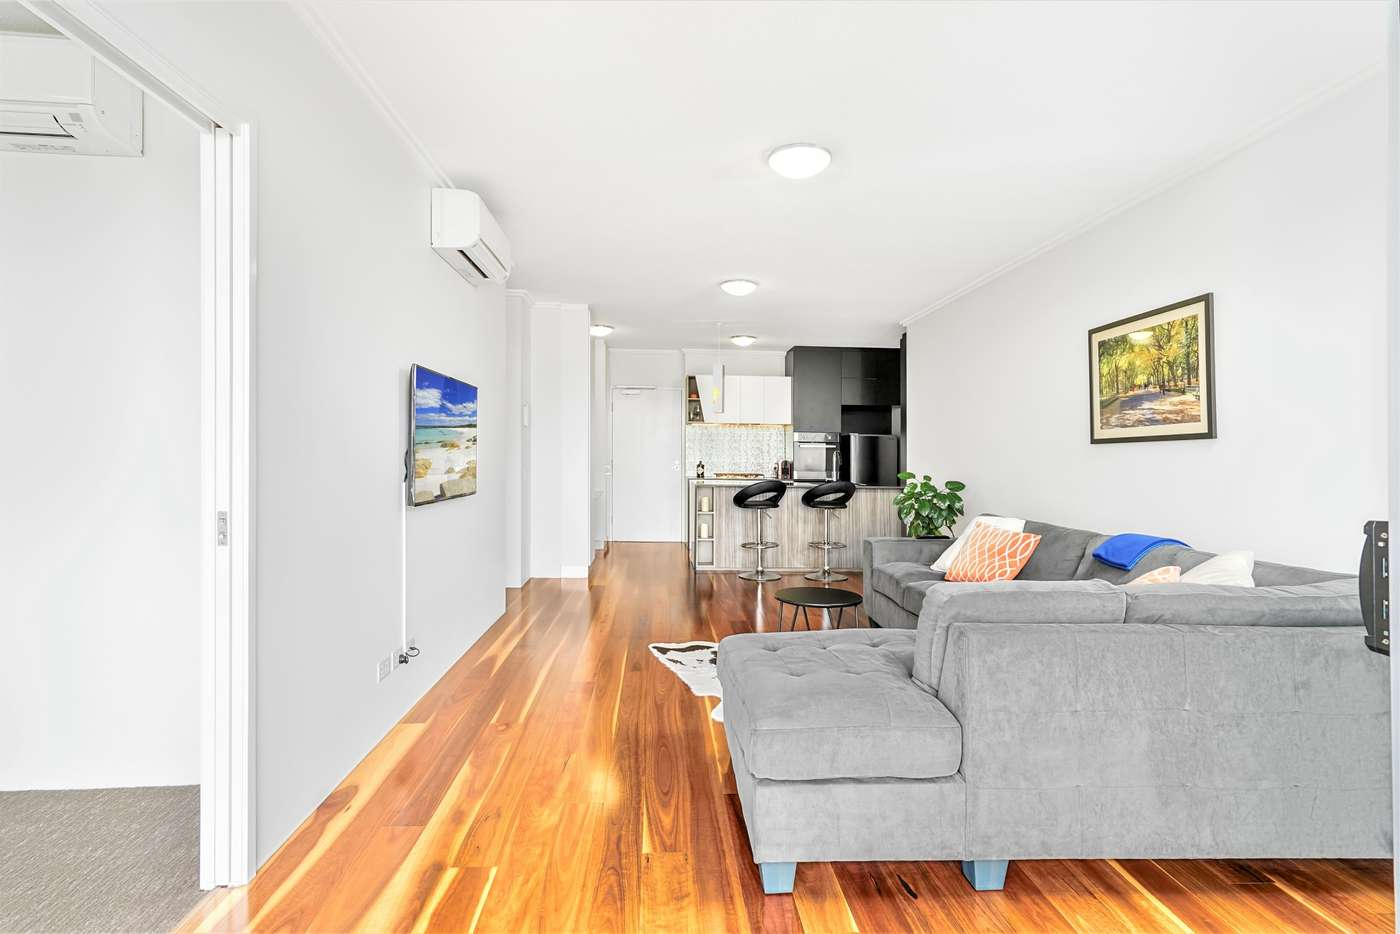 Fifth view of Homely apartment listing, 214/50 Connor Street, Kangaroo Point QLD 4169